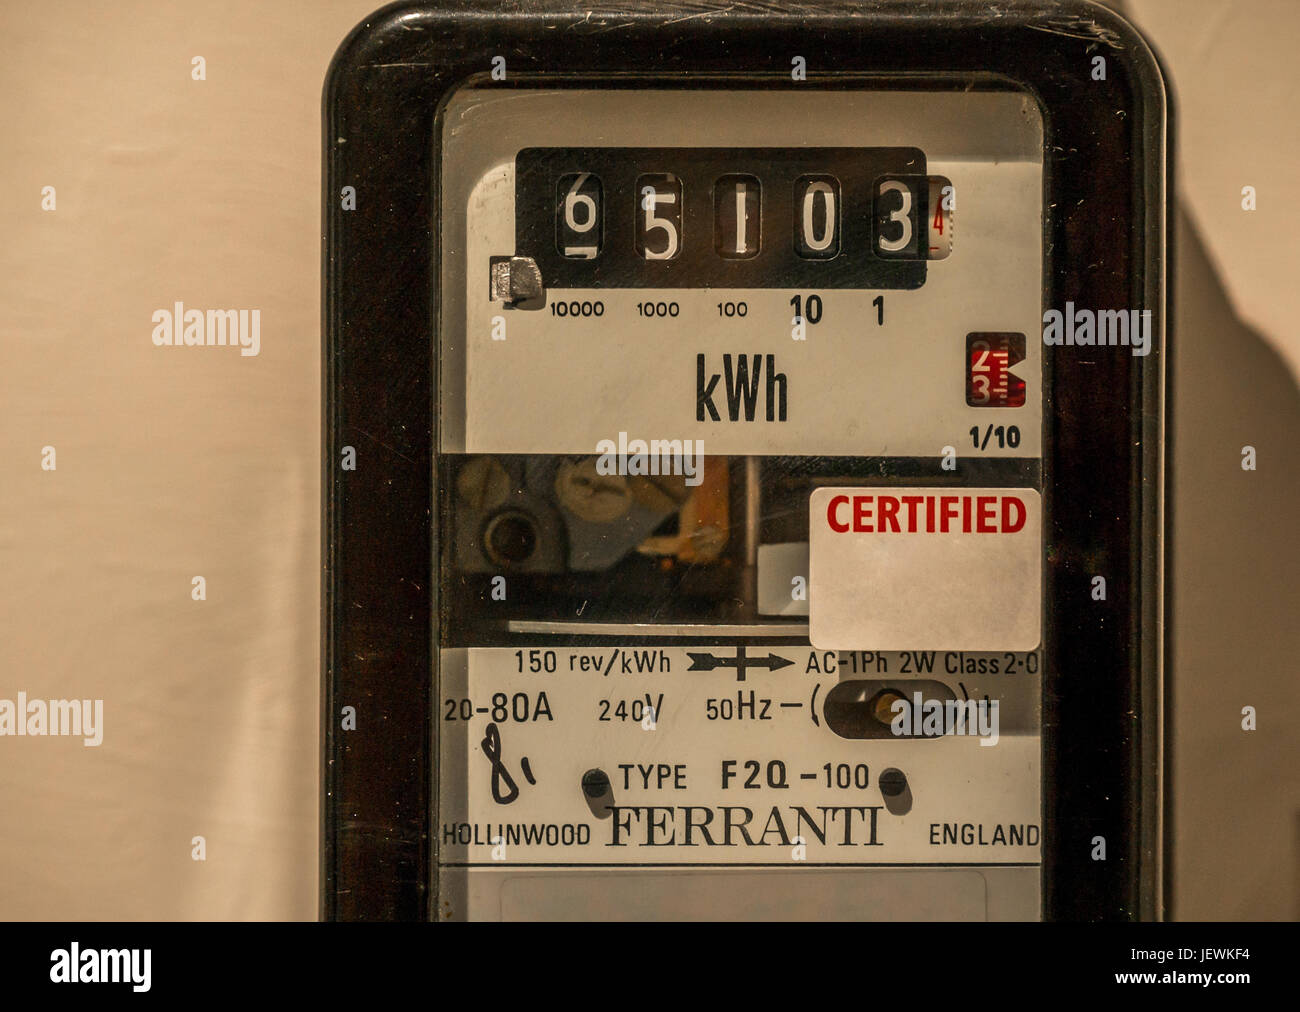 Close up of old British Ferranti F2Q-100 model electricity meter, Scotland, UK - Stock Image